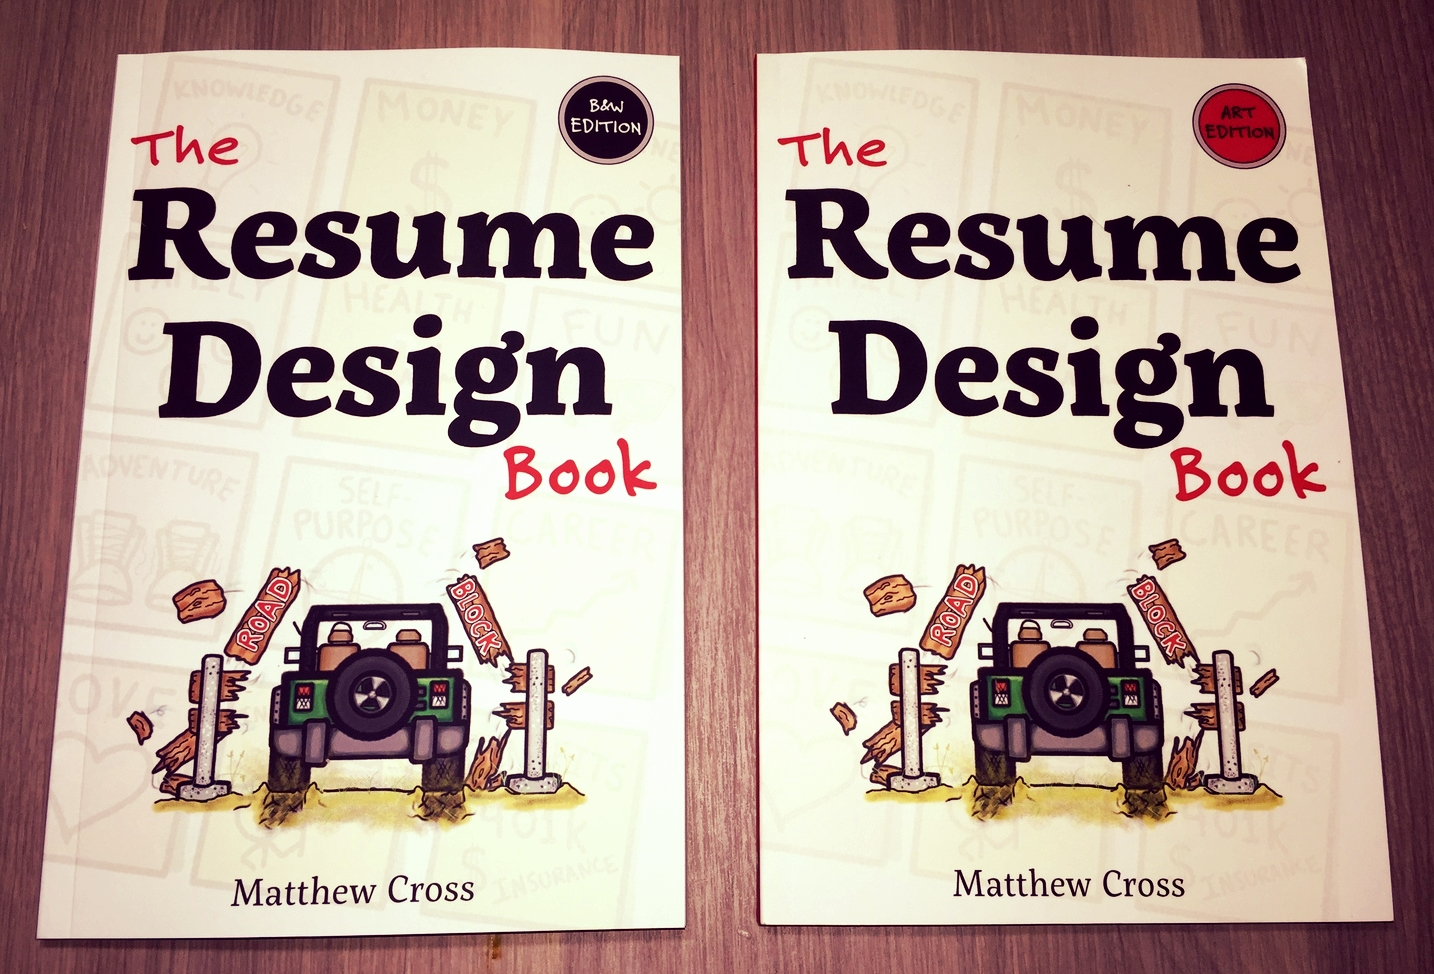 resume-design-book-pair.jpg